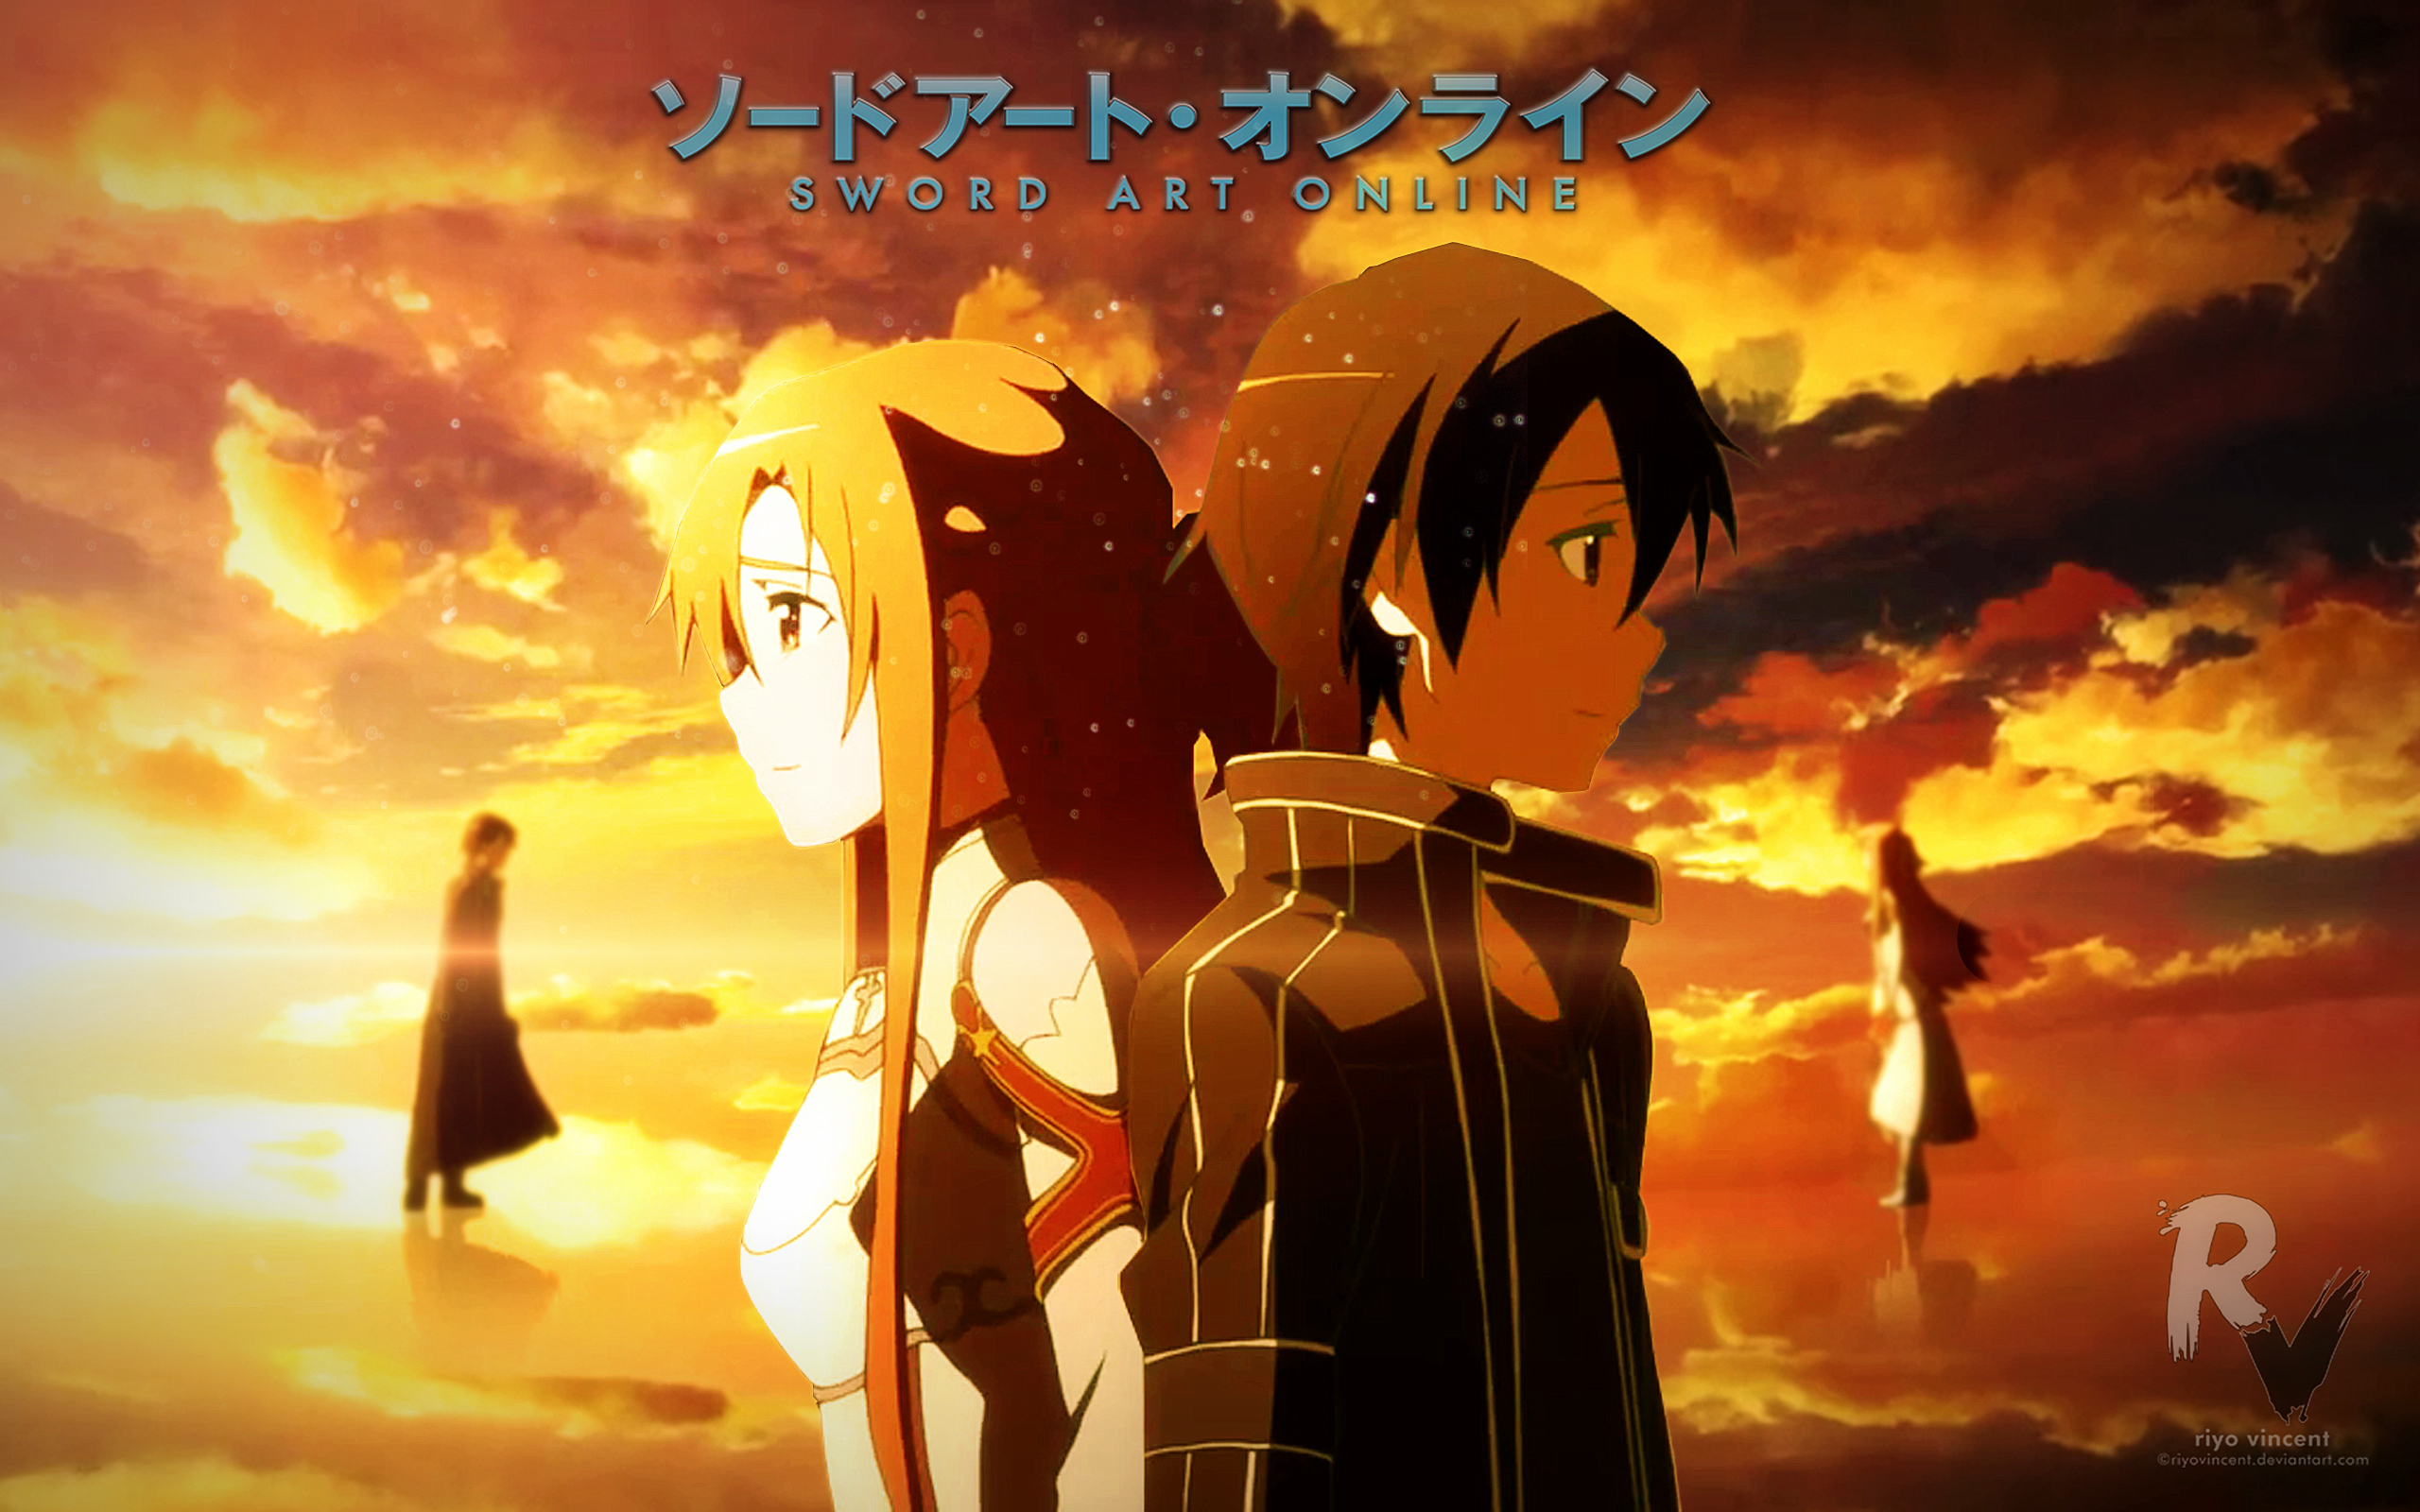 Cool Wallpaper Movie Sword Art Online - aoa-sword-art-online-wallpaper  Trends_145149.jpeg